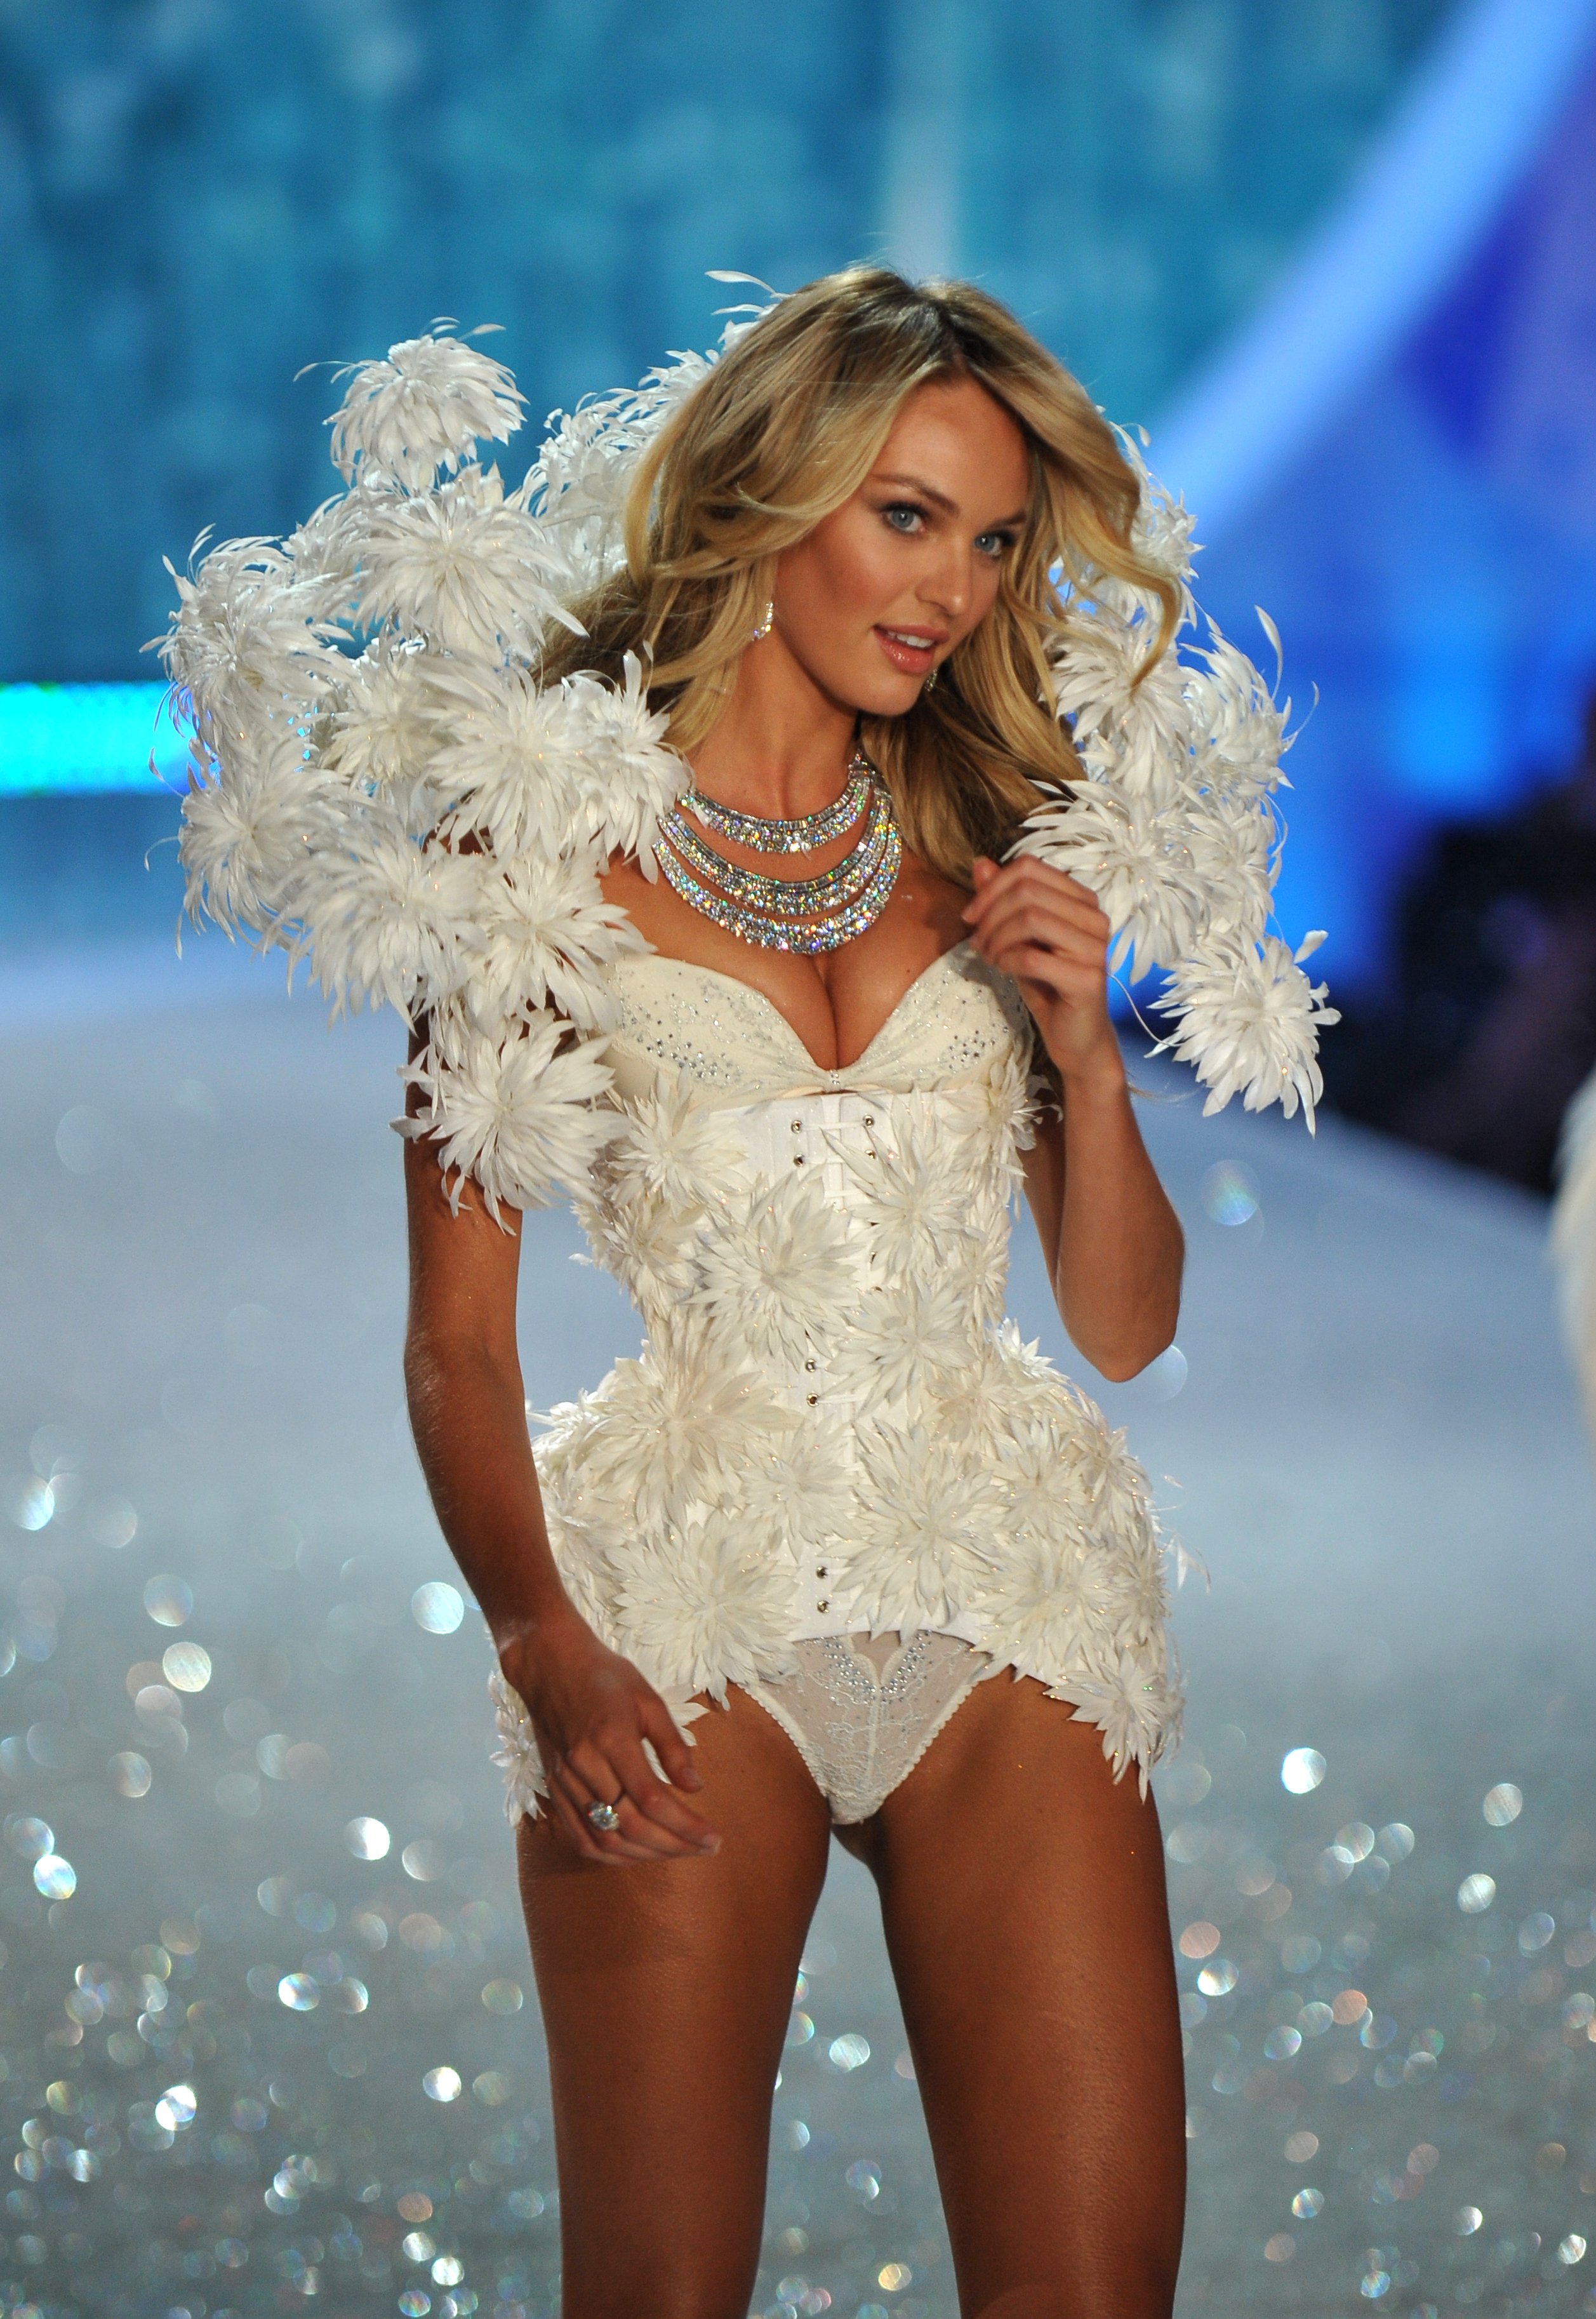 Famous South African Supermodel Candice Swanepoel Modeling For The Victoria's Secret Fashion Show In New York City Modeling As One Of The Highest Paid Fashion Models In The World.